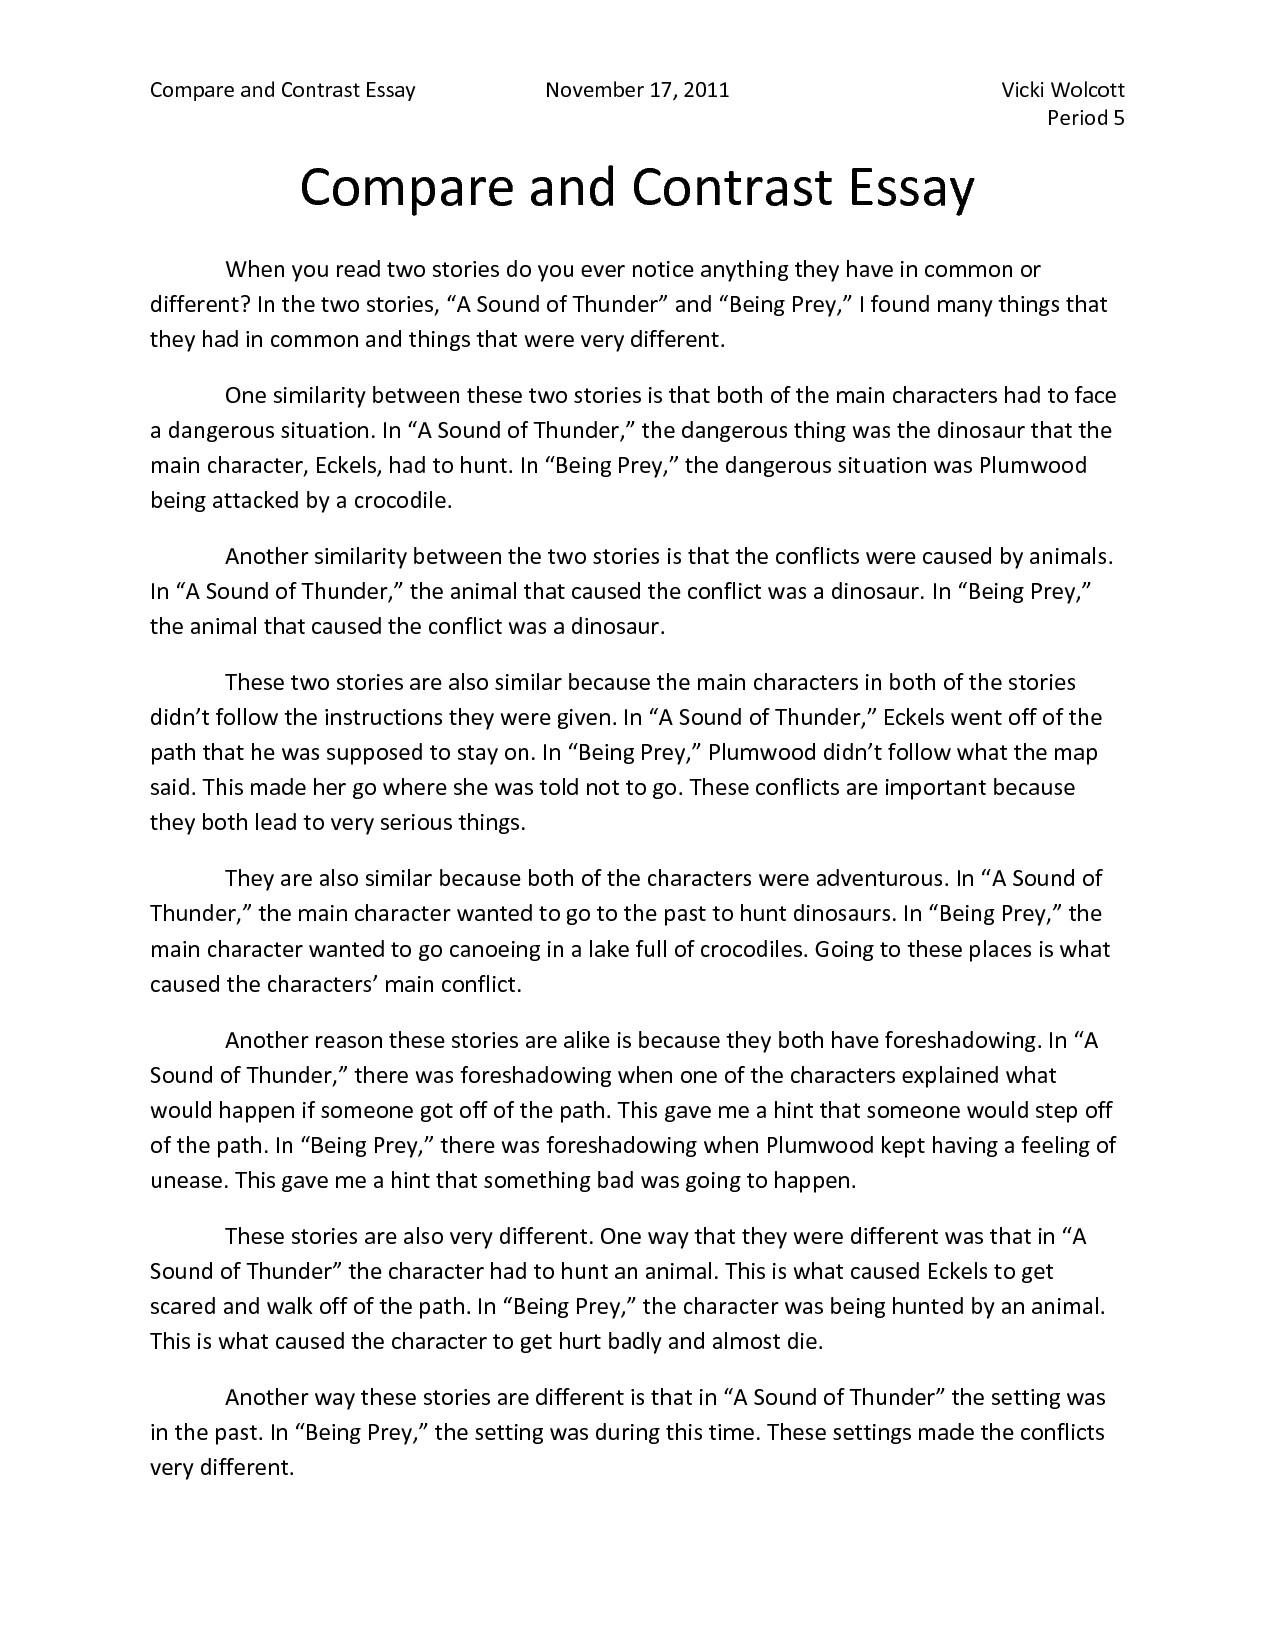 006 Comparing And Contrasting Essay Example Satire Examples Of Comparison Contrast Essays Com How To Write Outstanding A Compare On Two Poems An Introduction Conclusion For Middle School Full